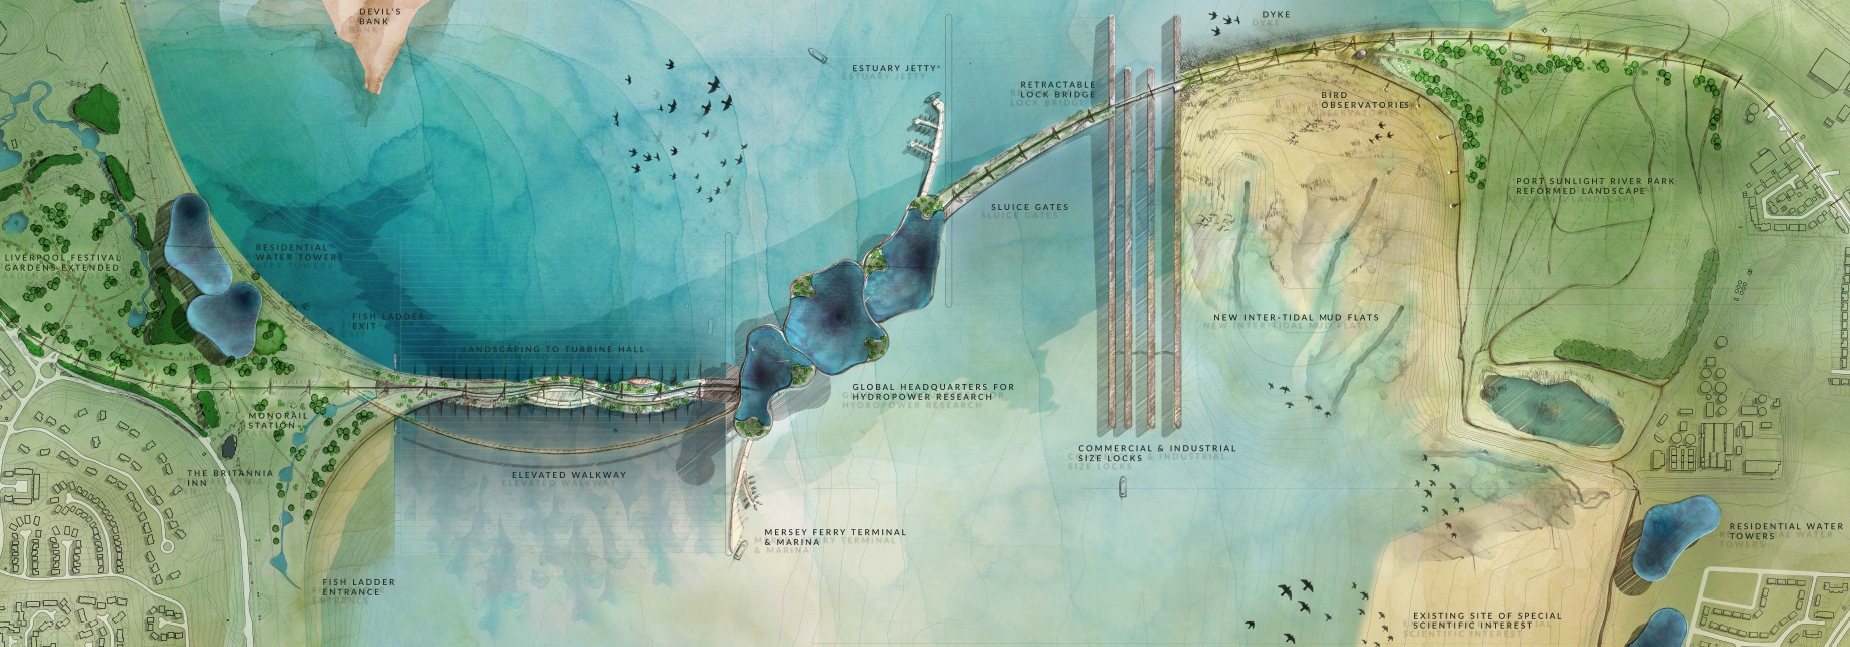 An illustration of the Mersey tidal barrage concept